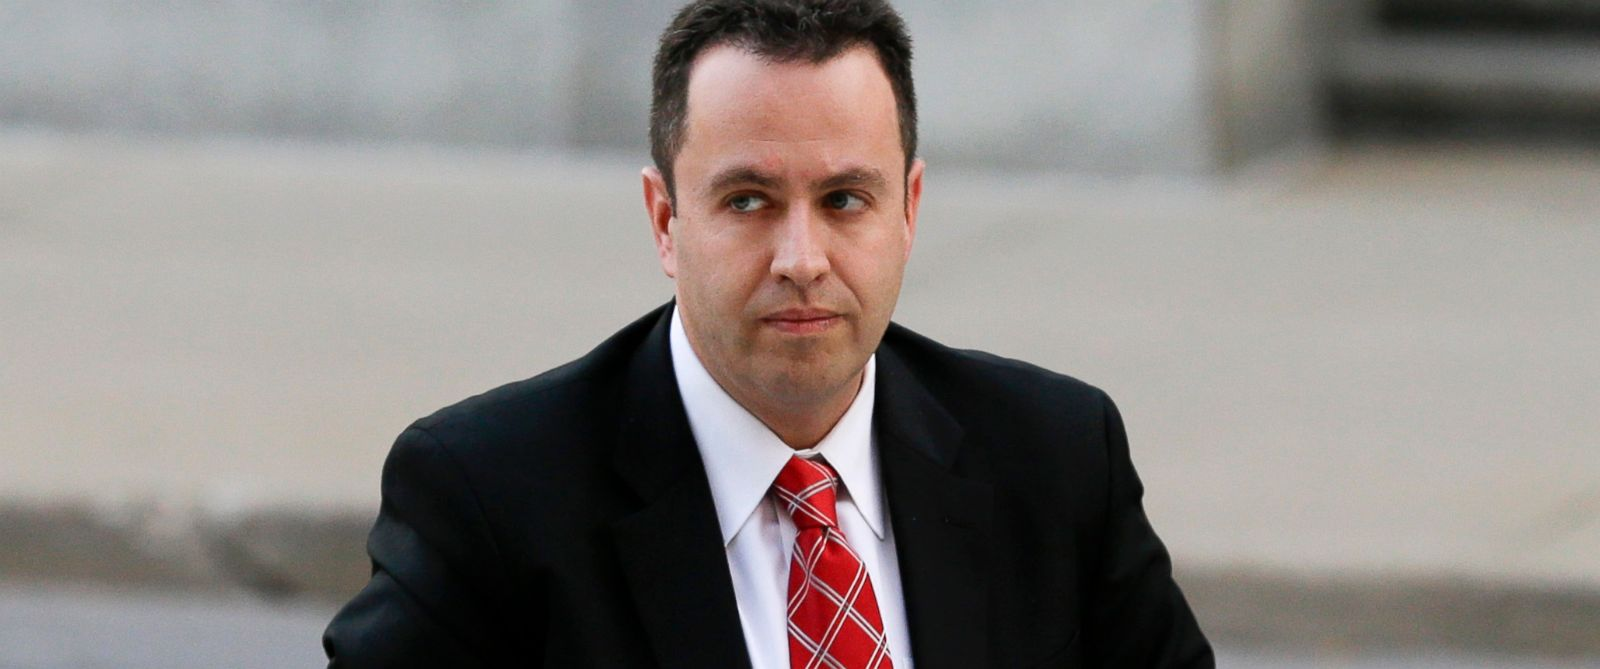 PHOTO: Former Subway pitchman Jared Fogle arrives at the federal courthouse in Indianapolis, Nov. 19, 2015.